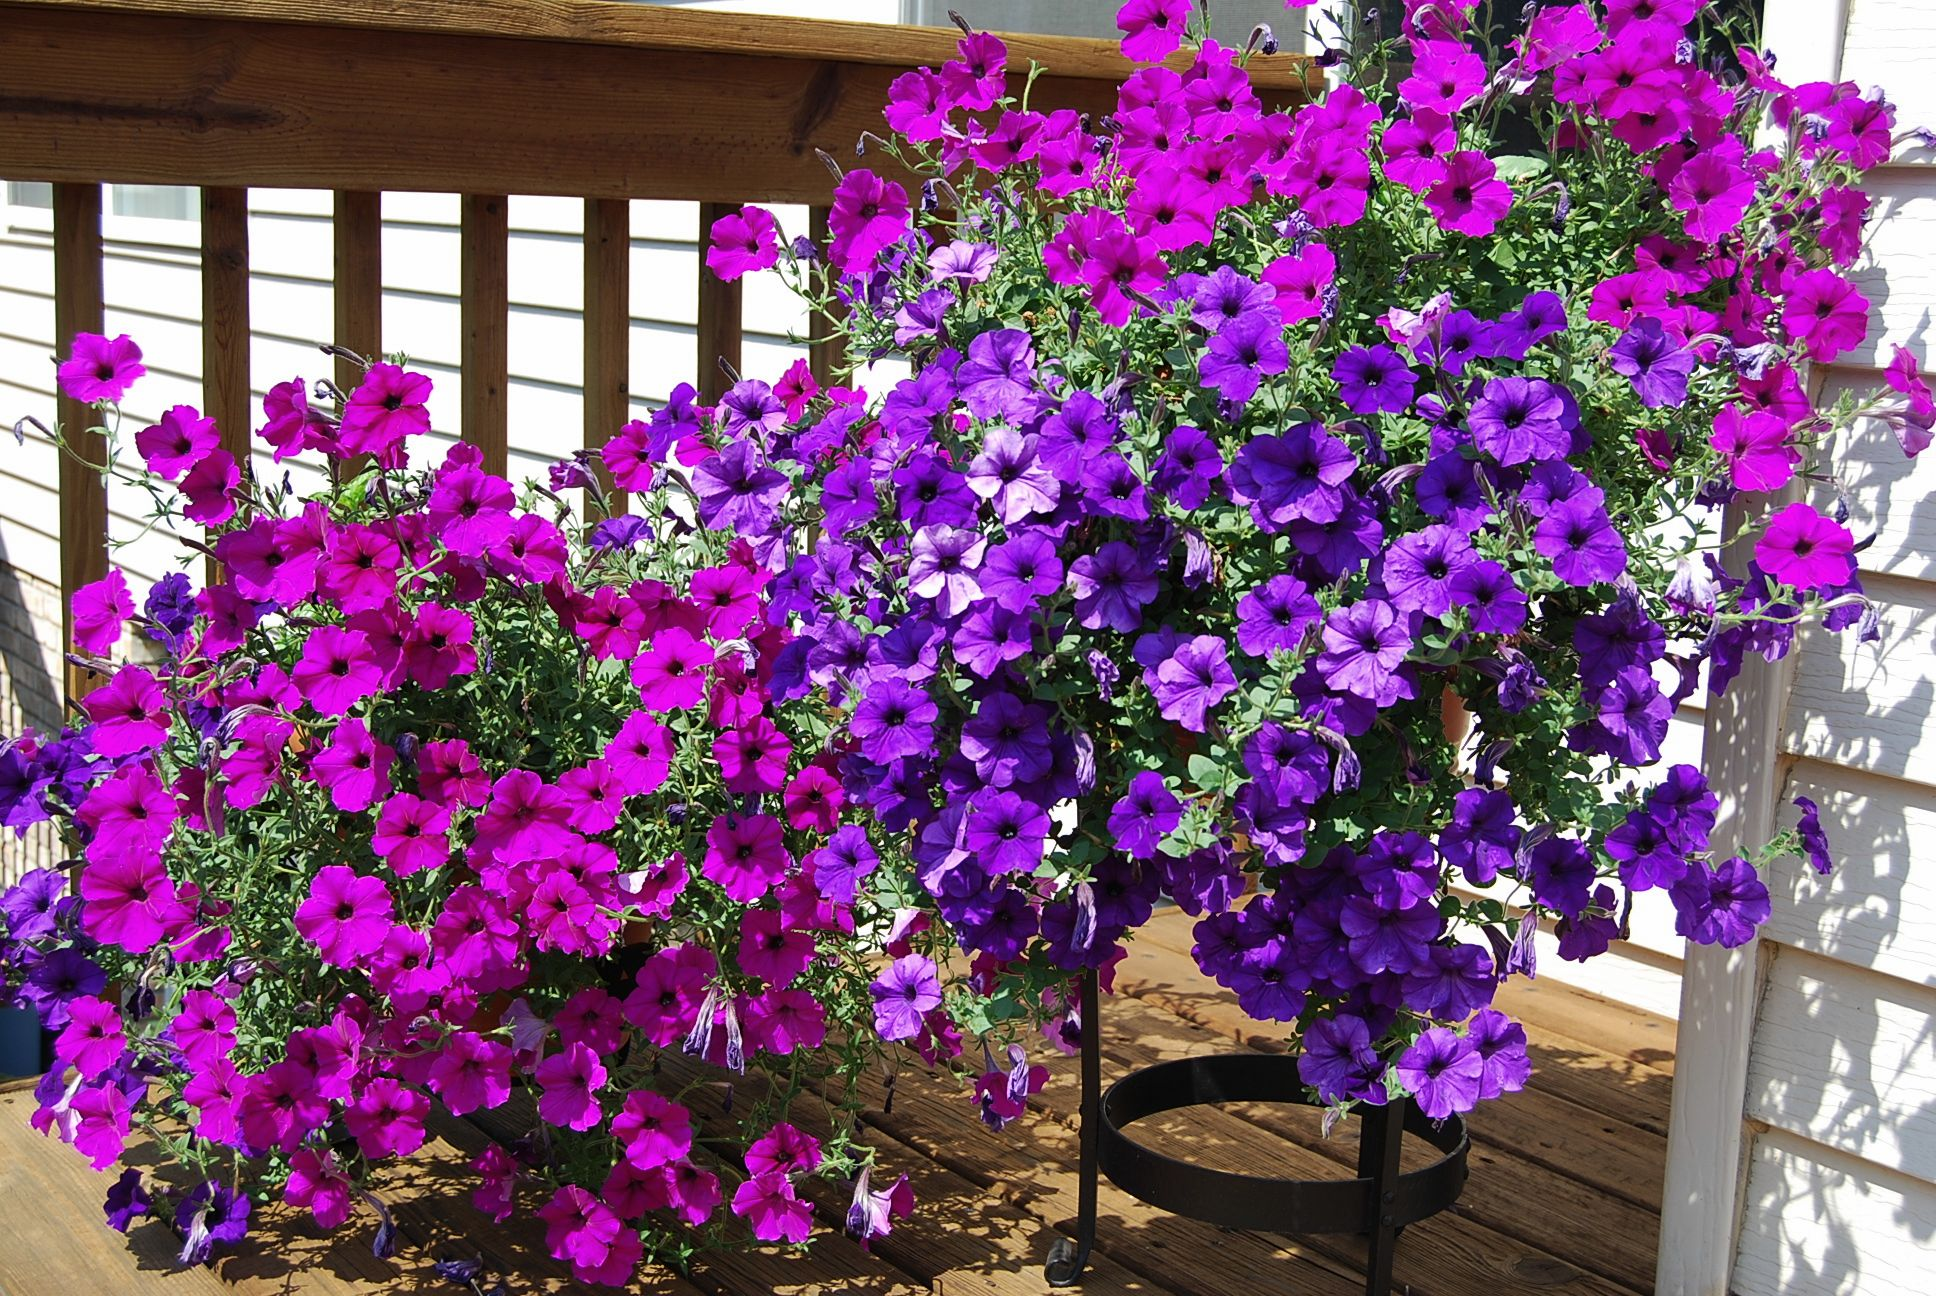 Balkonblumen Viel Sonne Plant Of The Month: Trailing Petunias | Gardening In The Mud